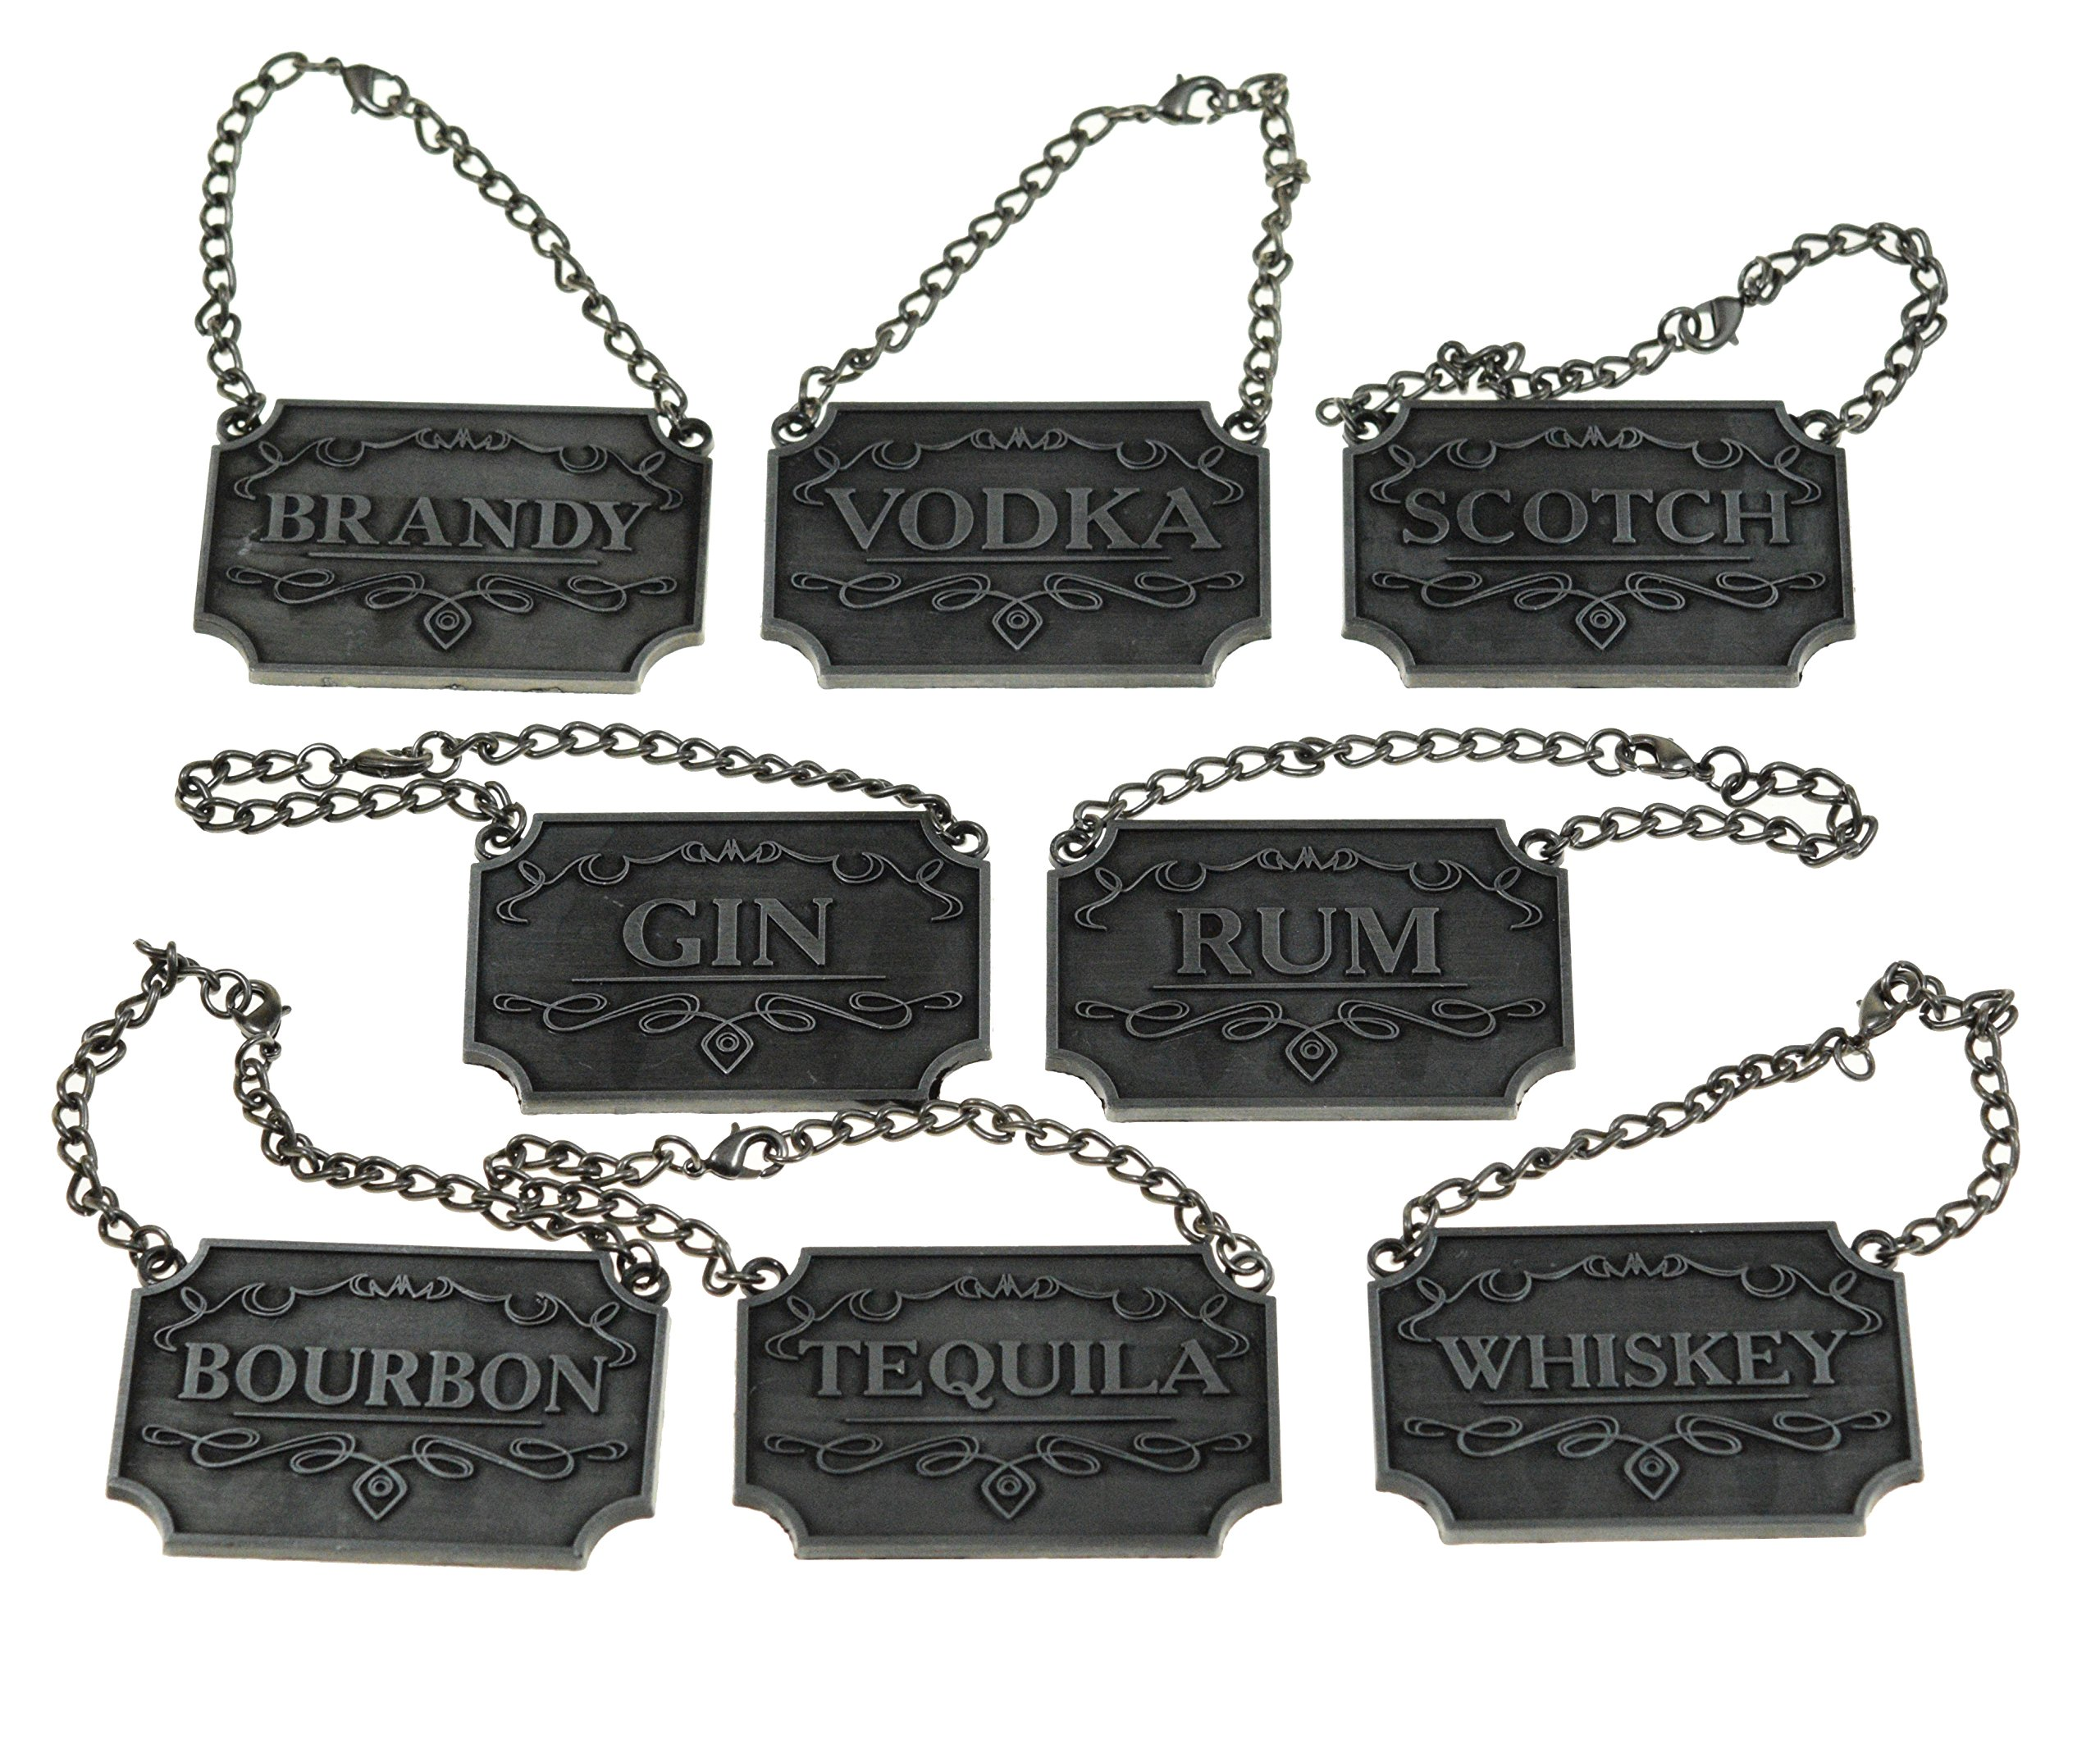 Rustic Silver Liquor Decanter Tags/Labels Set of Eight - Whiskey, Bourbon, Scotch, Gin, Rum, Vodka, Tequila and Brandy - Adjustable Chain for the Perfect Fit (Rustic Silver)